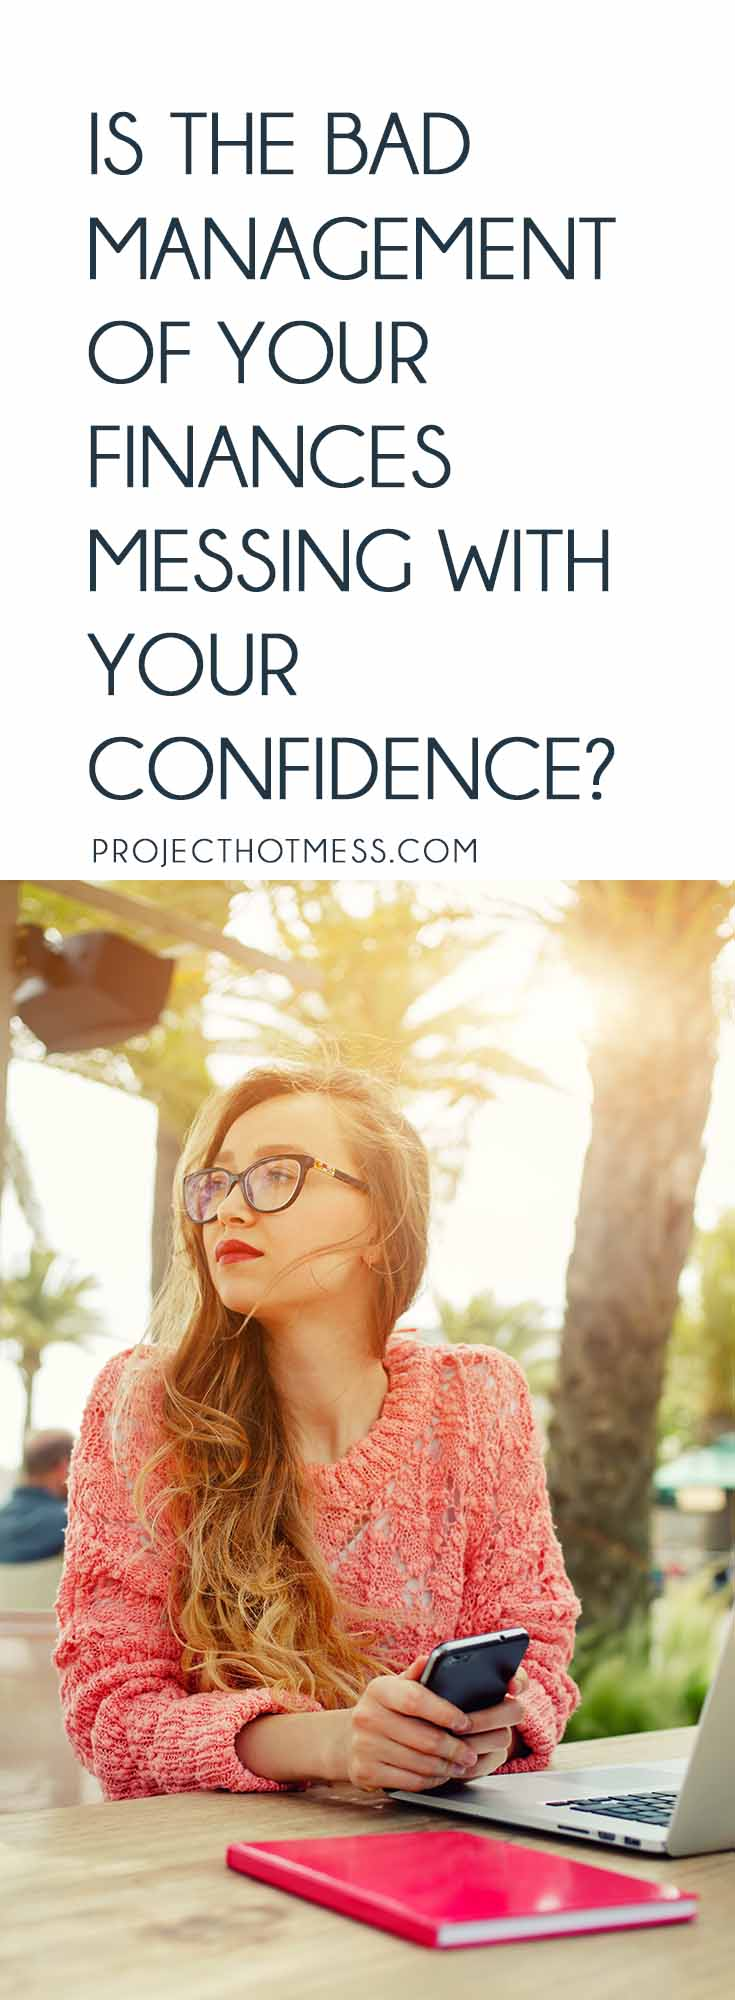 One thing that can destroy your confidence is the bad management of your finances. Whether you have a lot of money or not, learning to manage it is vital. Personal Finance | Money | Money Goals | Budgeting | Budgeting Goals | Budgeting Ideas | Finances | Financial Planning | Money Mindset | Positive Money Mindset |